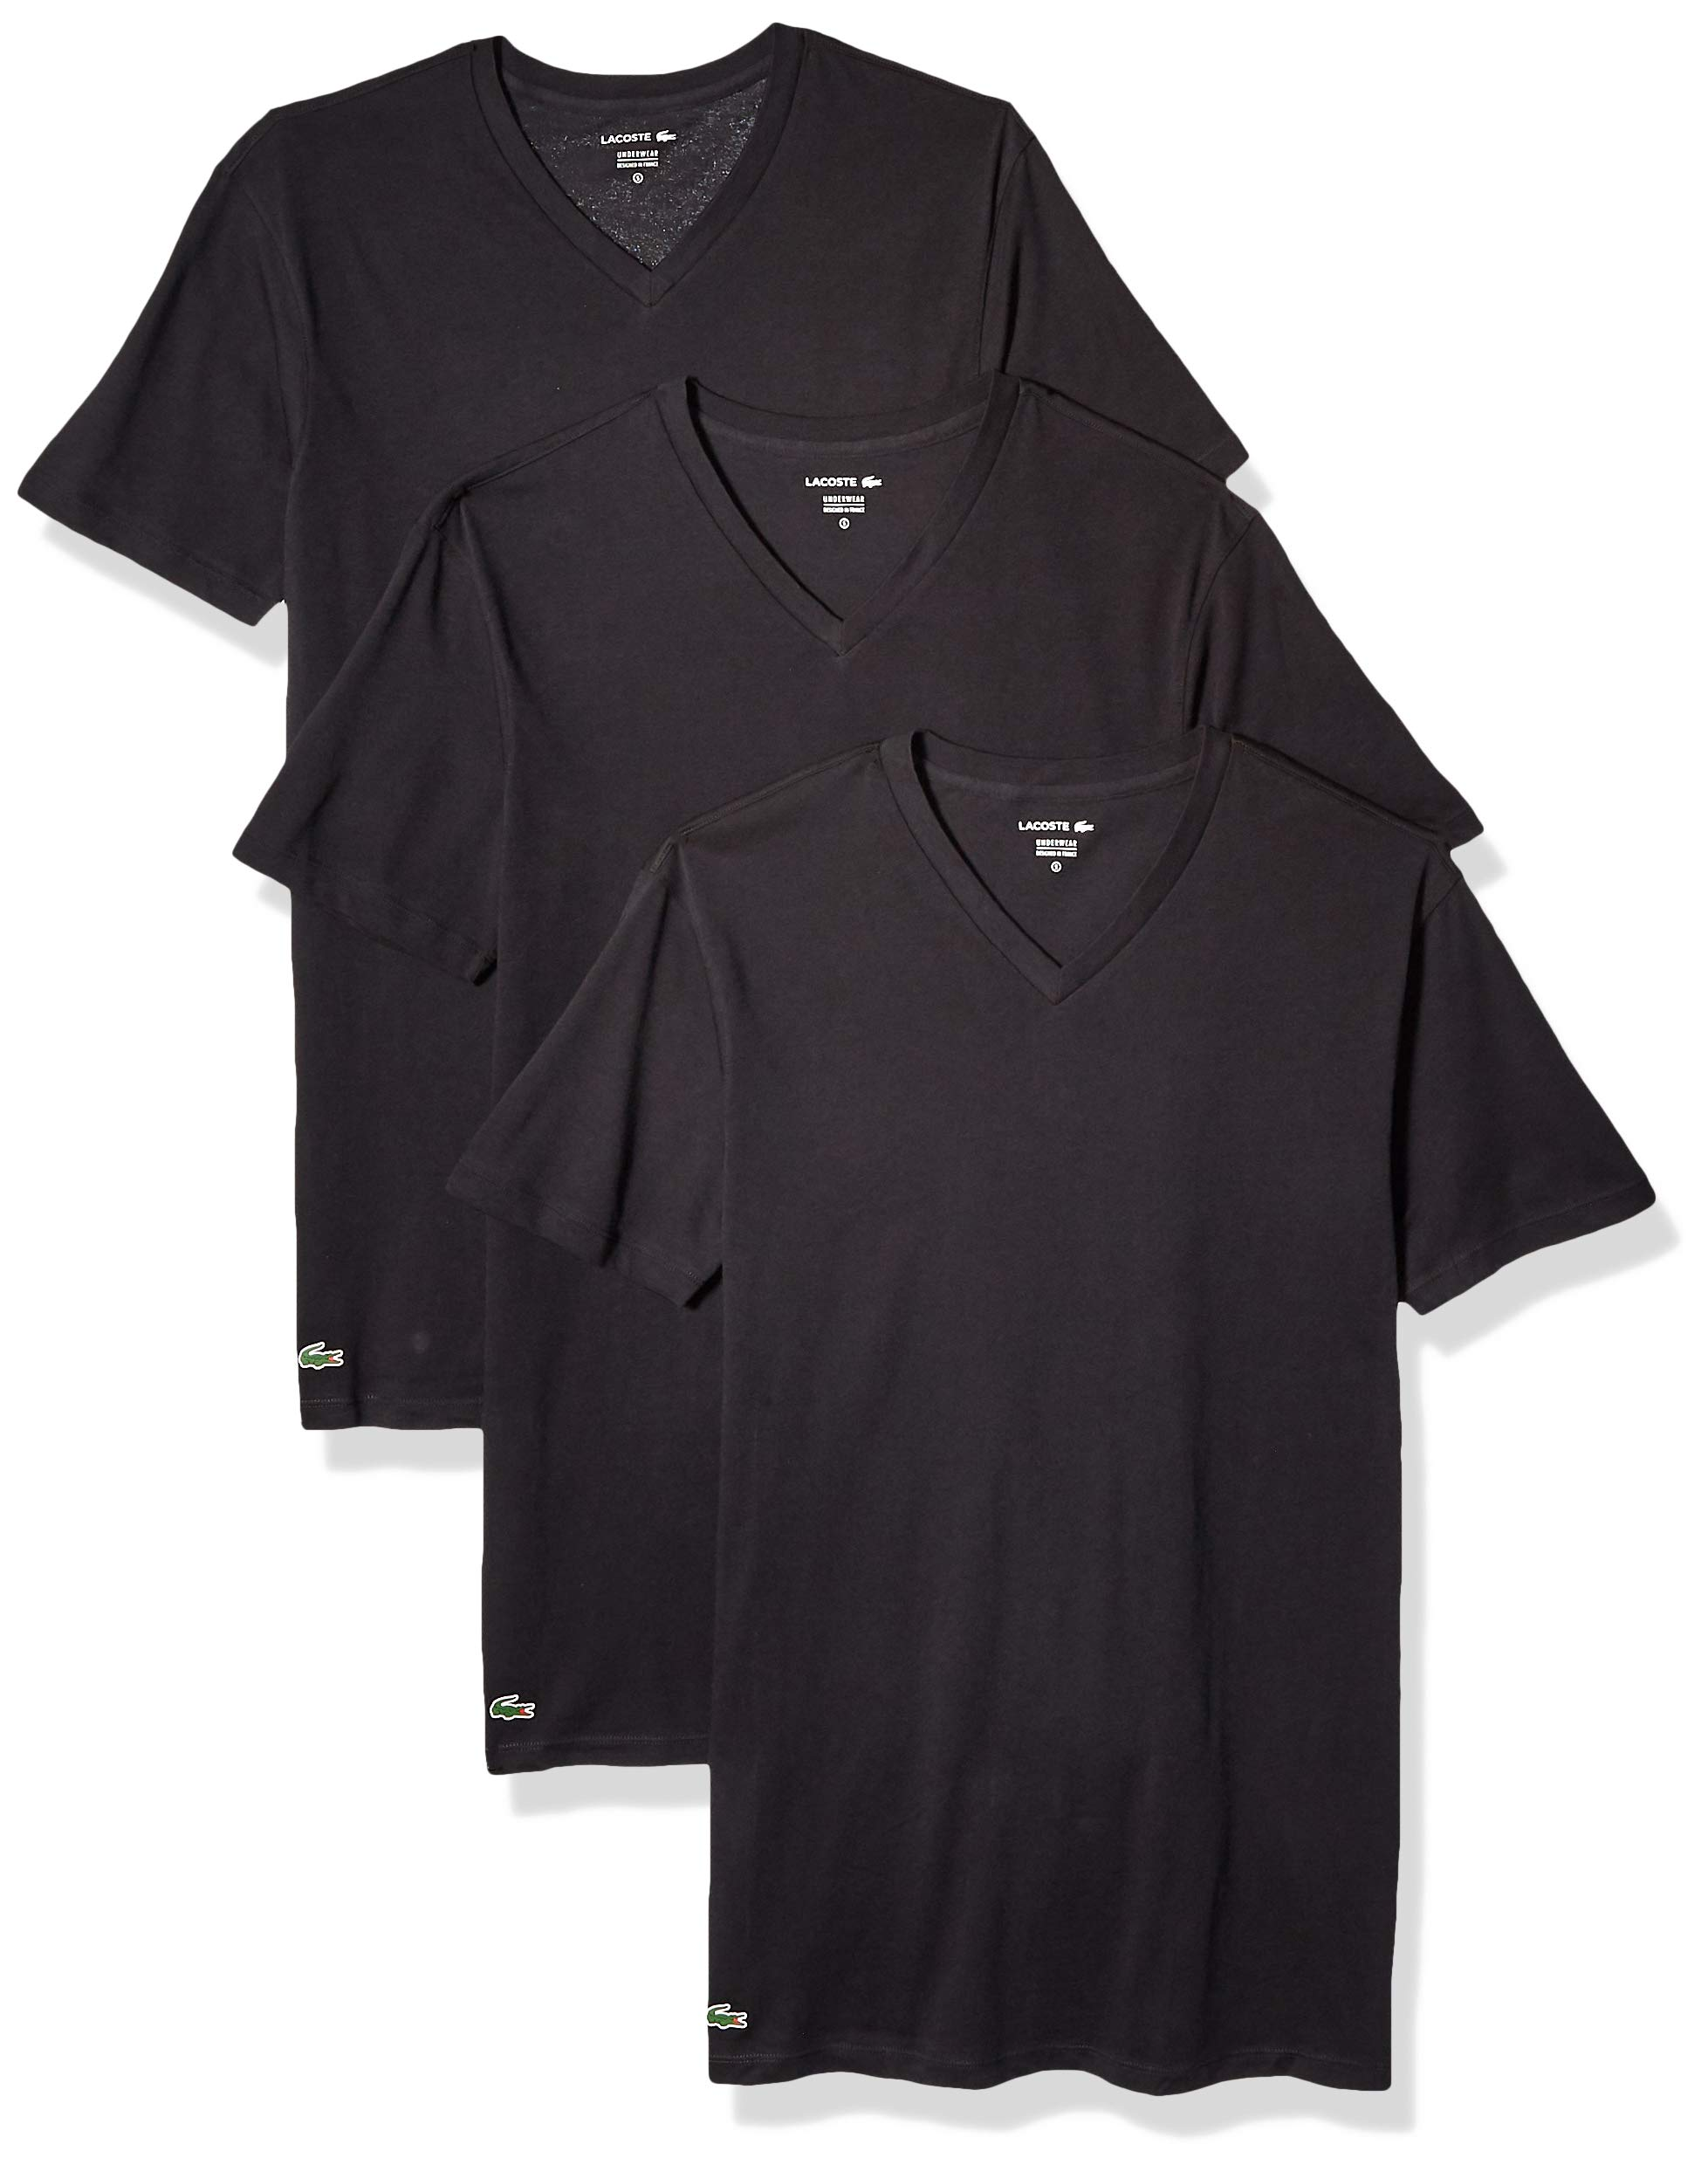 Lacoste Men's Classic Fit Cotton V Neck Tee, Multipack, New Black, L by Lacoste